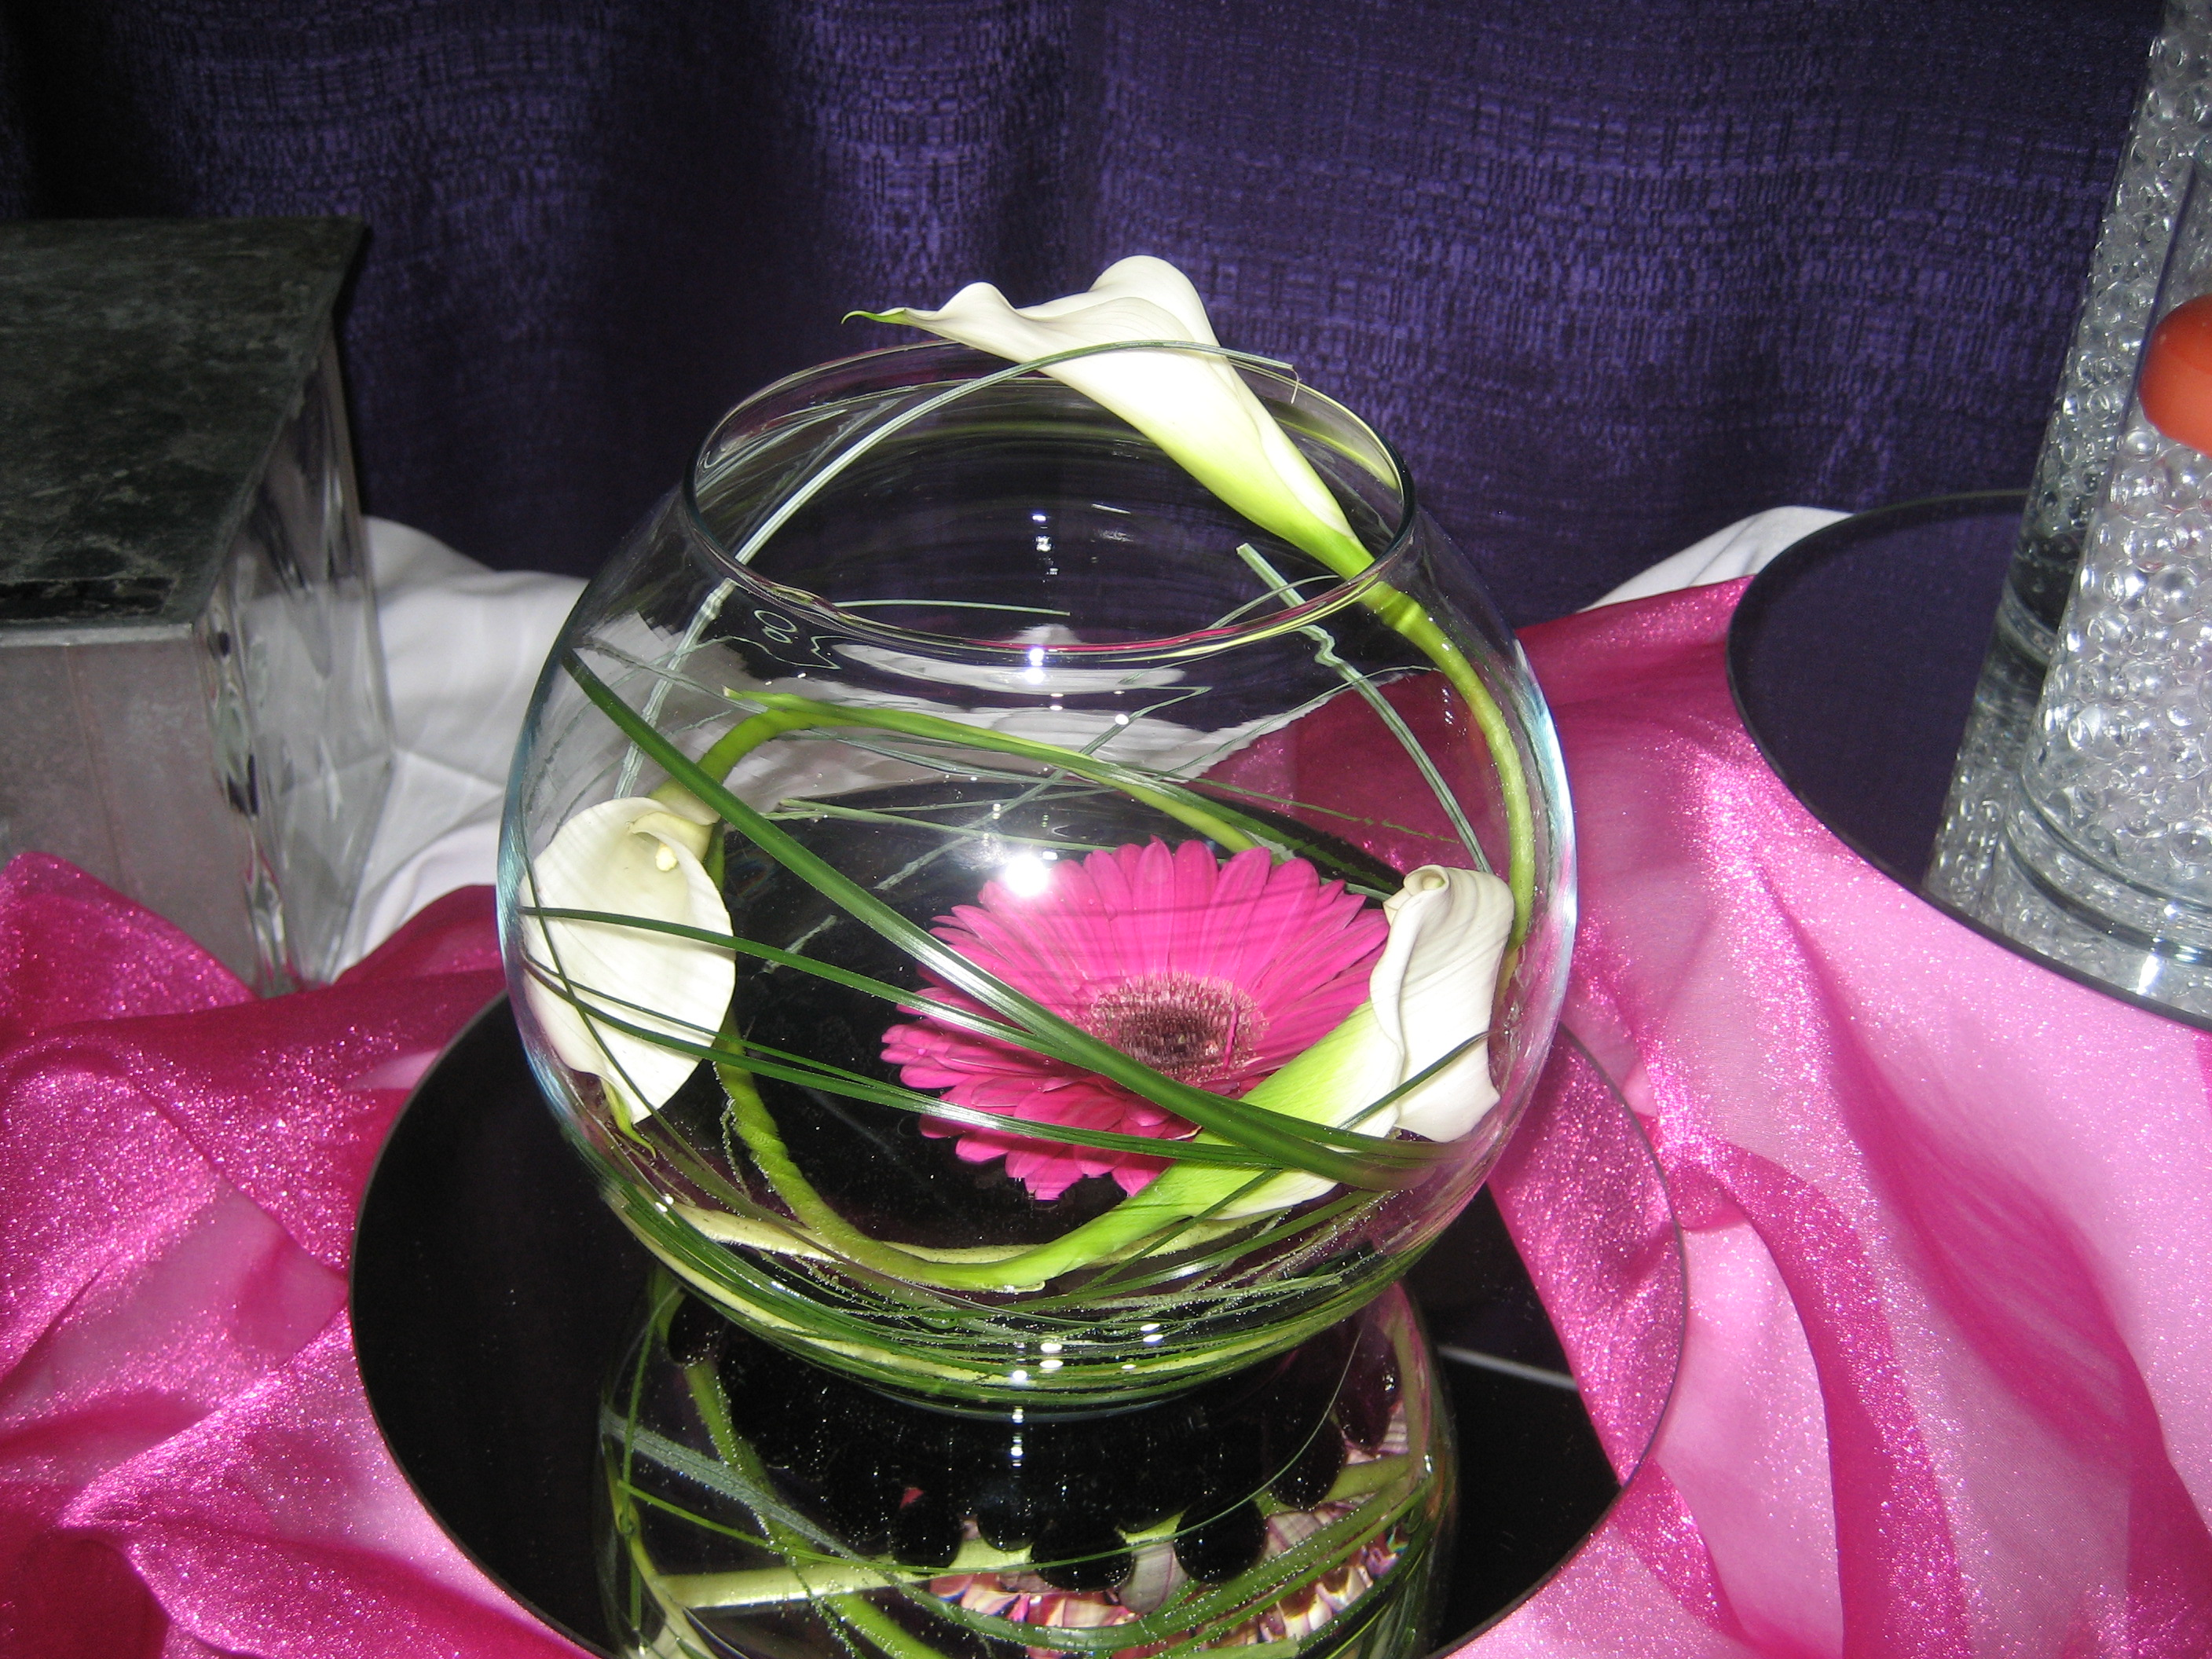 Rose bowl cwnterpiece with calla and gerber daisy